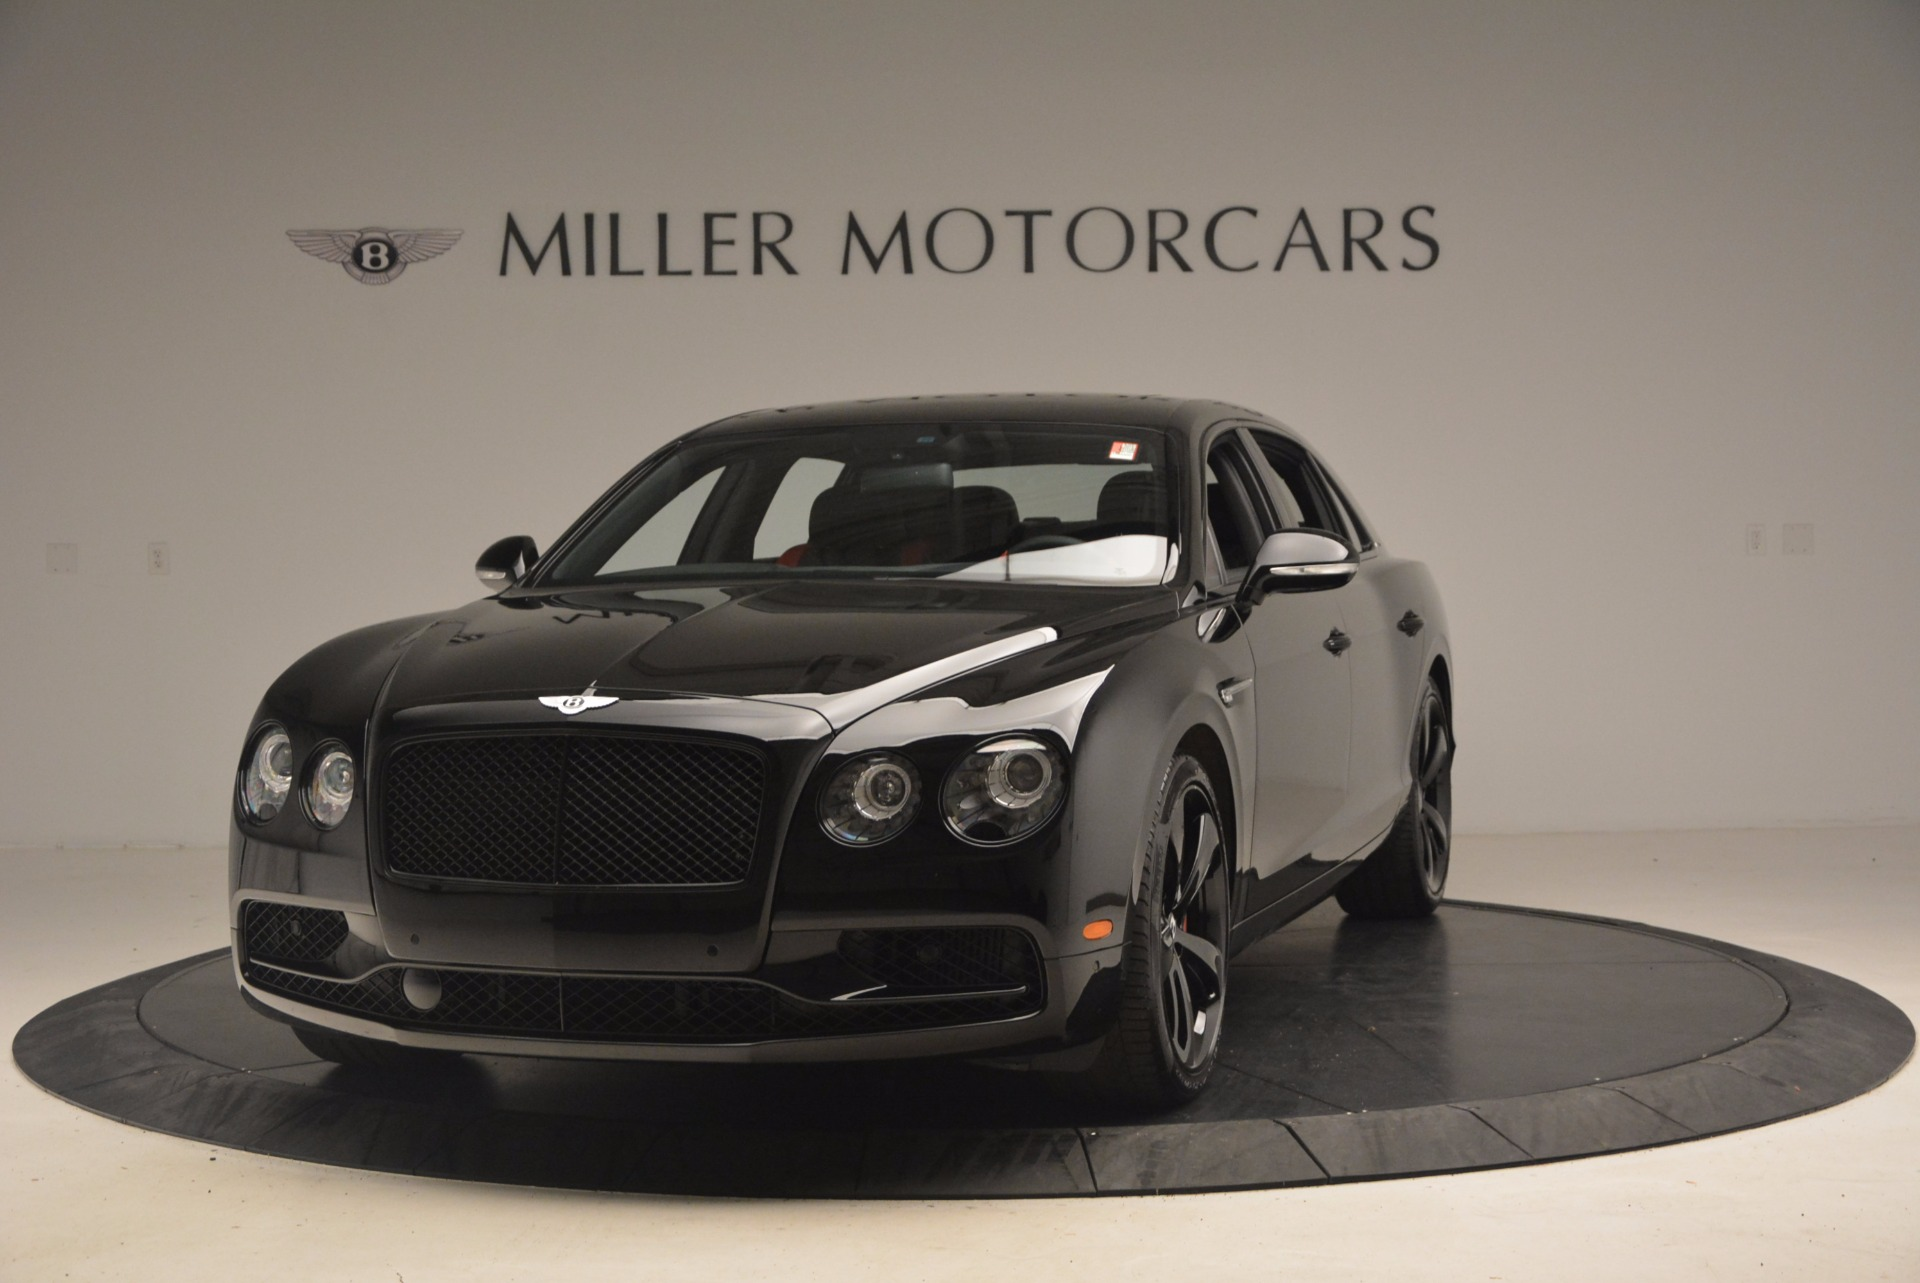 New 2017 Bentley Flying Spur W12 S For Sale In Greenwich, CT 861_main